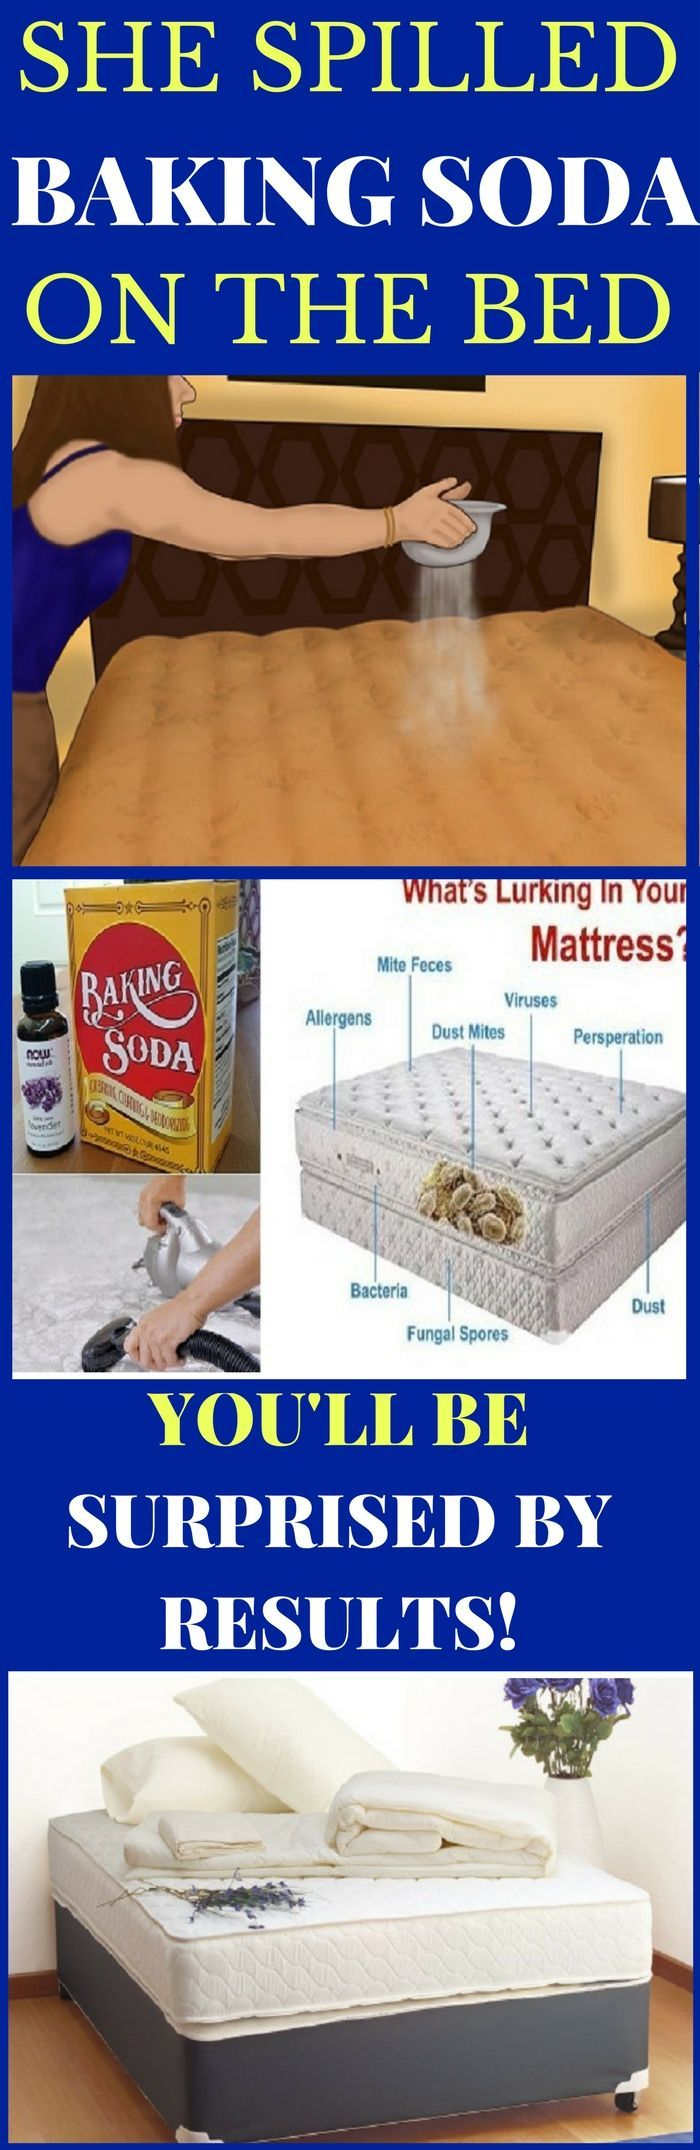 she spilled baking soda on the bed and after 30 minutes they all remain speechless when you. Black Bedroom Furniture Sets. Home Design Ideas